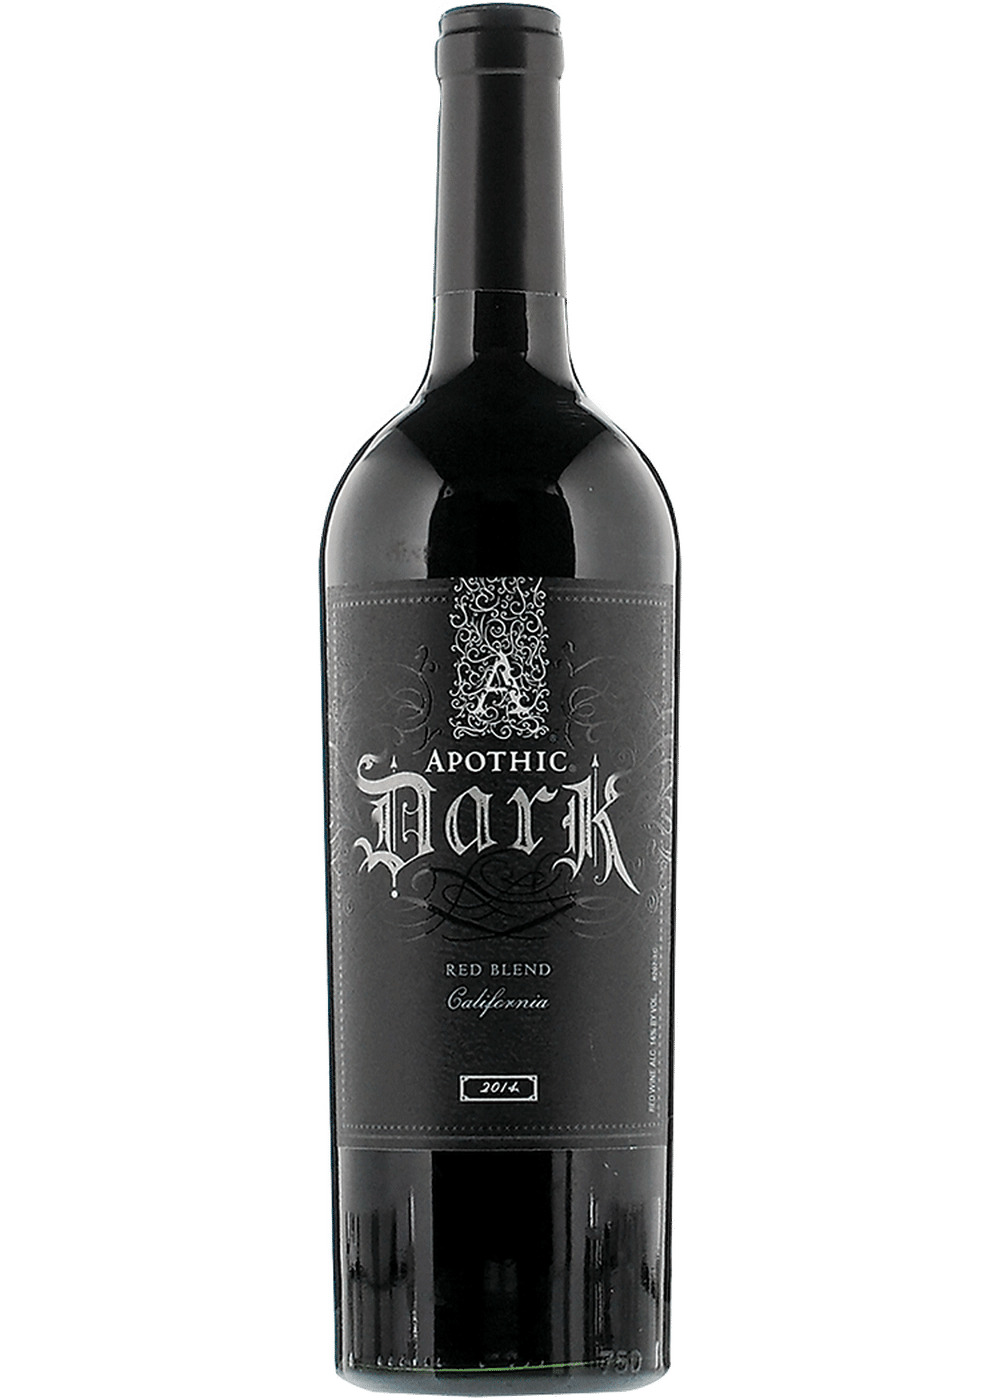 Apothic Dark Red Blend 750ml NV